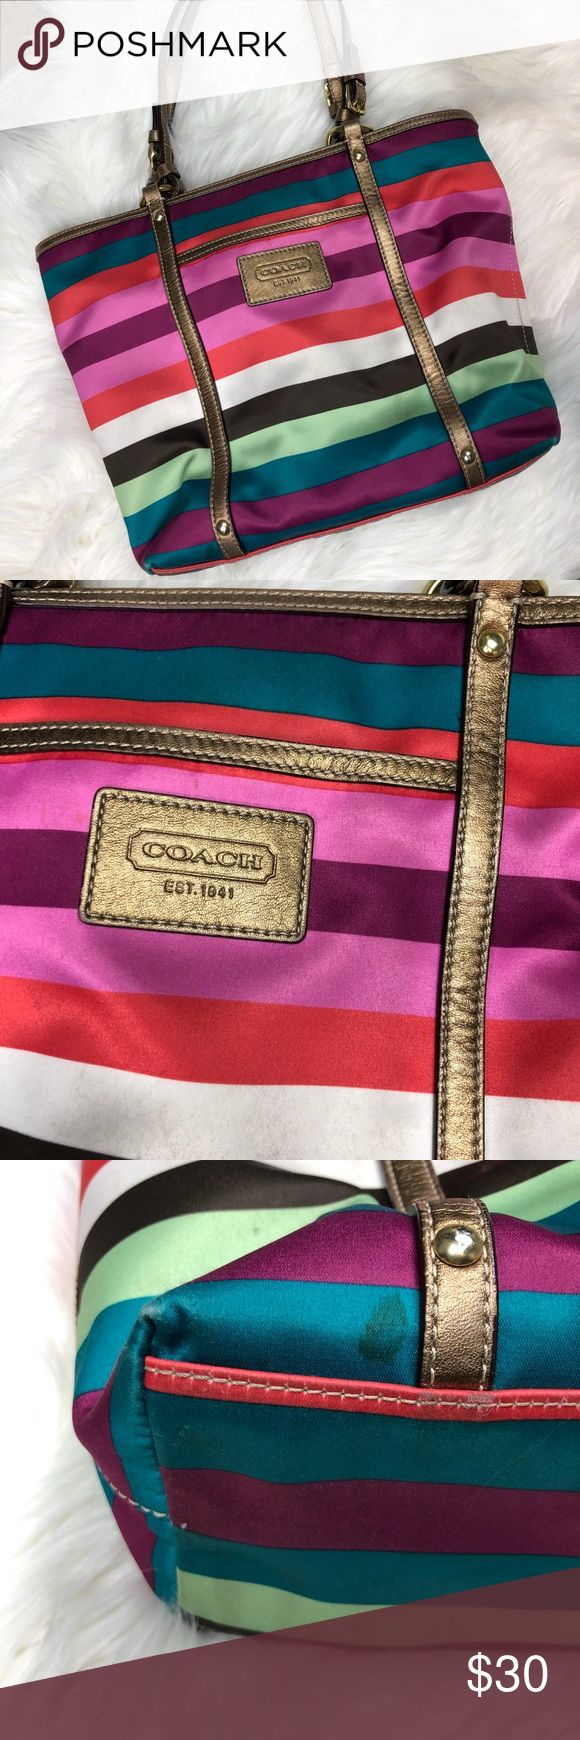 """COACH LEGACY MULTI STRIPE SATIN TOTE multi-colour stripe metallic bronze leather trim zip top closure front zip pocket leather patch with COACH EST. 1941 brass  hardware COACH hangtag and decorative brass button interior slip pockets interior zip pocket D ring to hang accessories or key fob khaki satin lining Coach creed and serial number measures approx. 12.5"""" (L) x 10"""" (H) x 4"""" (W) please view all photos this is a great bag from a smoke free home with a few blemishes to the bottom corners…"""